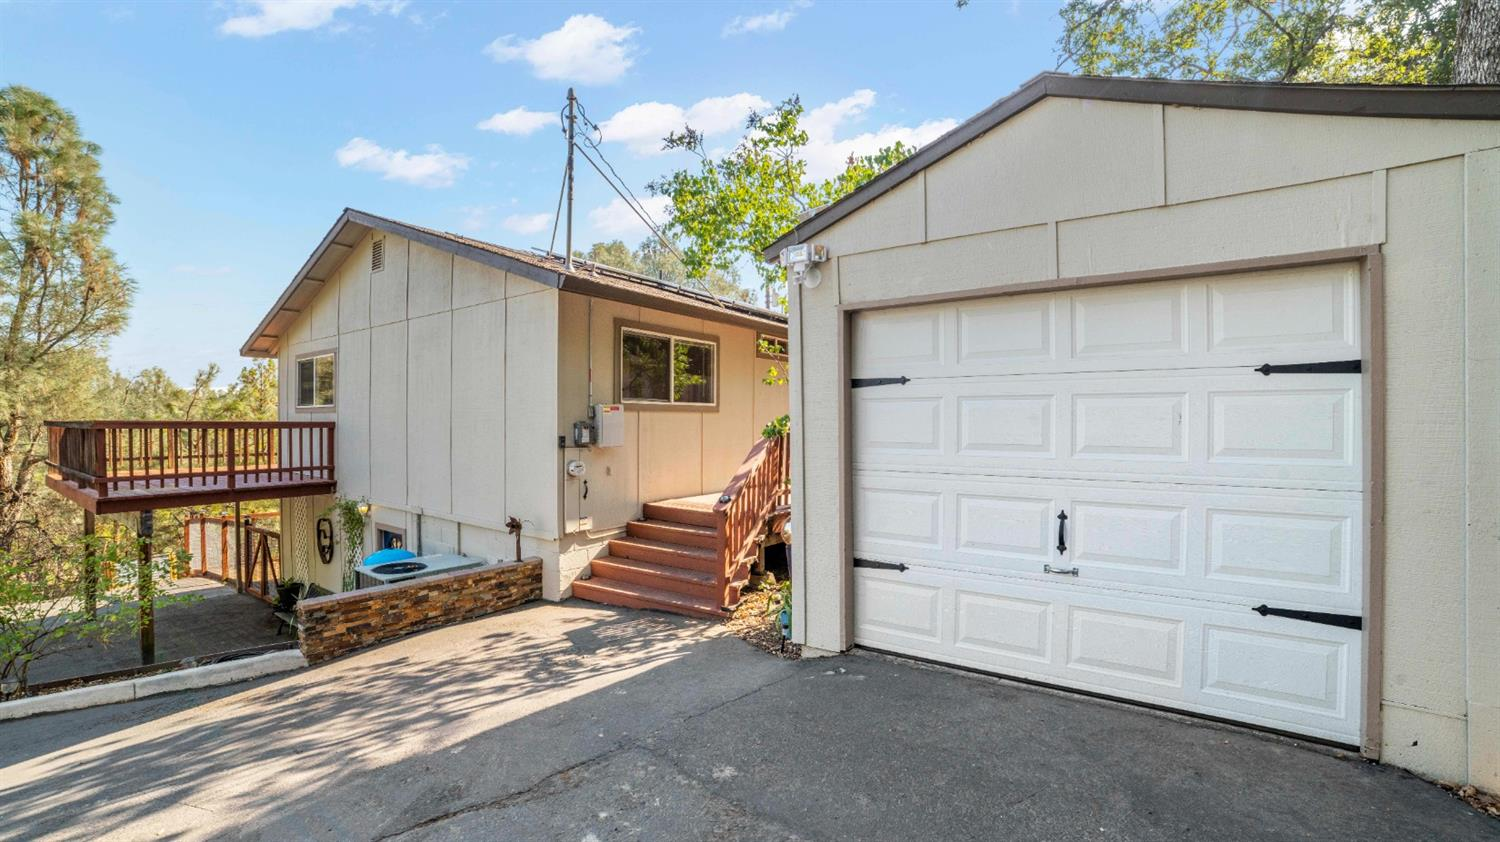 Feel at home in this move-in ready, all electric house in the heart of El Dorado. Escape the high bills from PG&E with owned solar and enjoy the pine filled skyline off the back deck. Outside is a fully fenced, freshly graded back yard with plenty of untapped potential. Inside you'll find newer upgrades and a kitchen boasting stainless steel appliances. Just minutes from Highway 50, you'll be able to commute to Sacramento or Tahoe with ease. You can also stay local and visit places like Apple Hill, Red Hawk Casino or Downtown Placerville with an easy drive inside of 20 minutes. Just a stones throw from great schools, shopping, and the newer portion of the El Dorado Trail System, leaves this house in the perfect location. Definitely a home you will not want to miss!